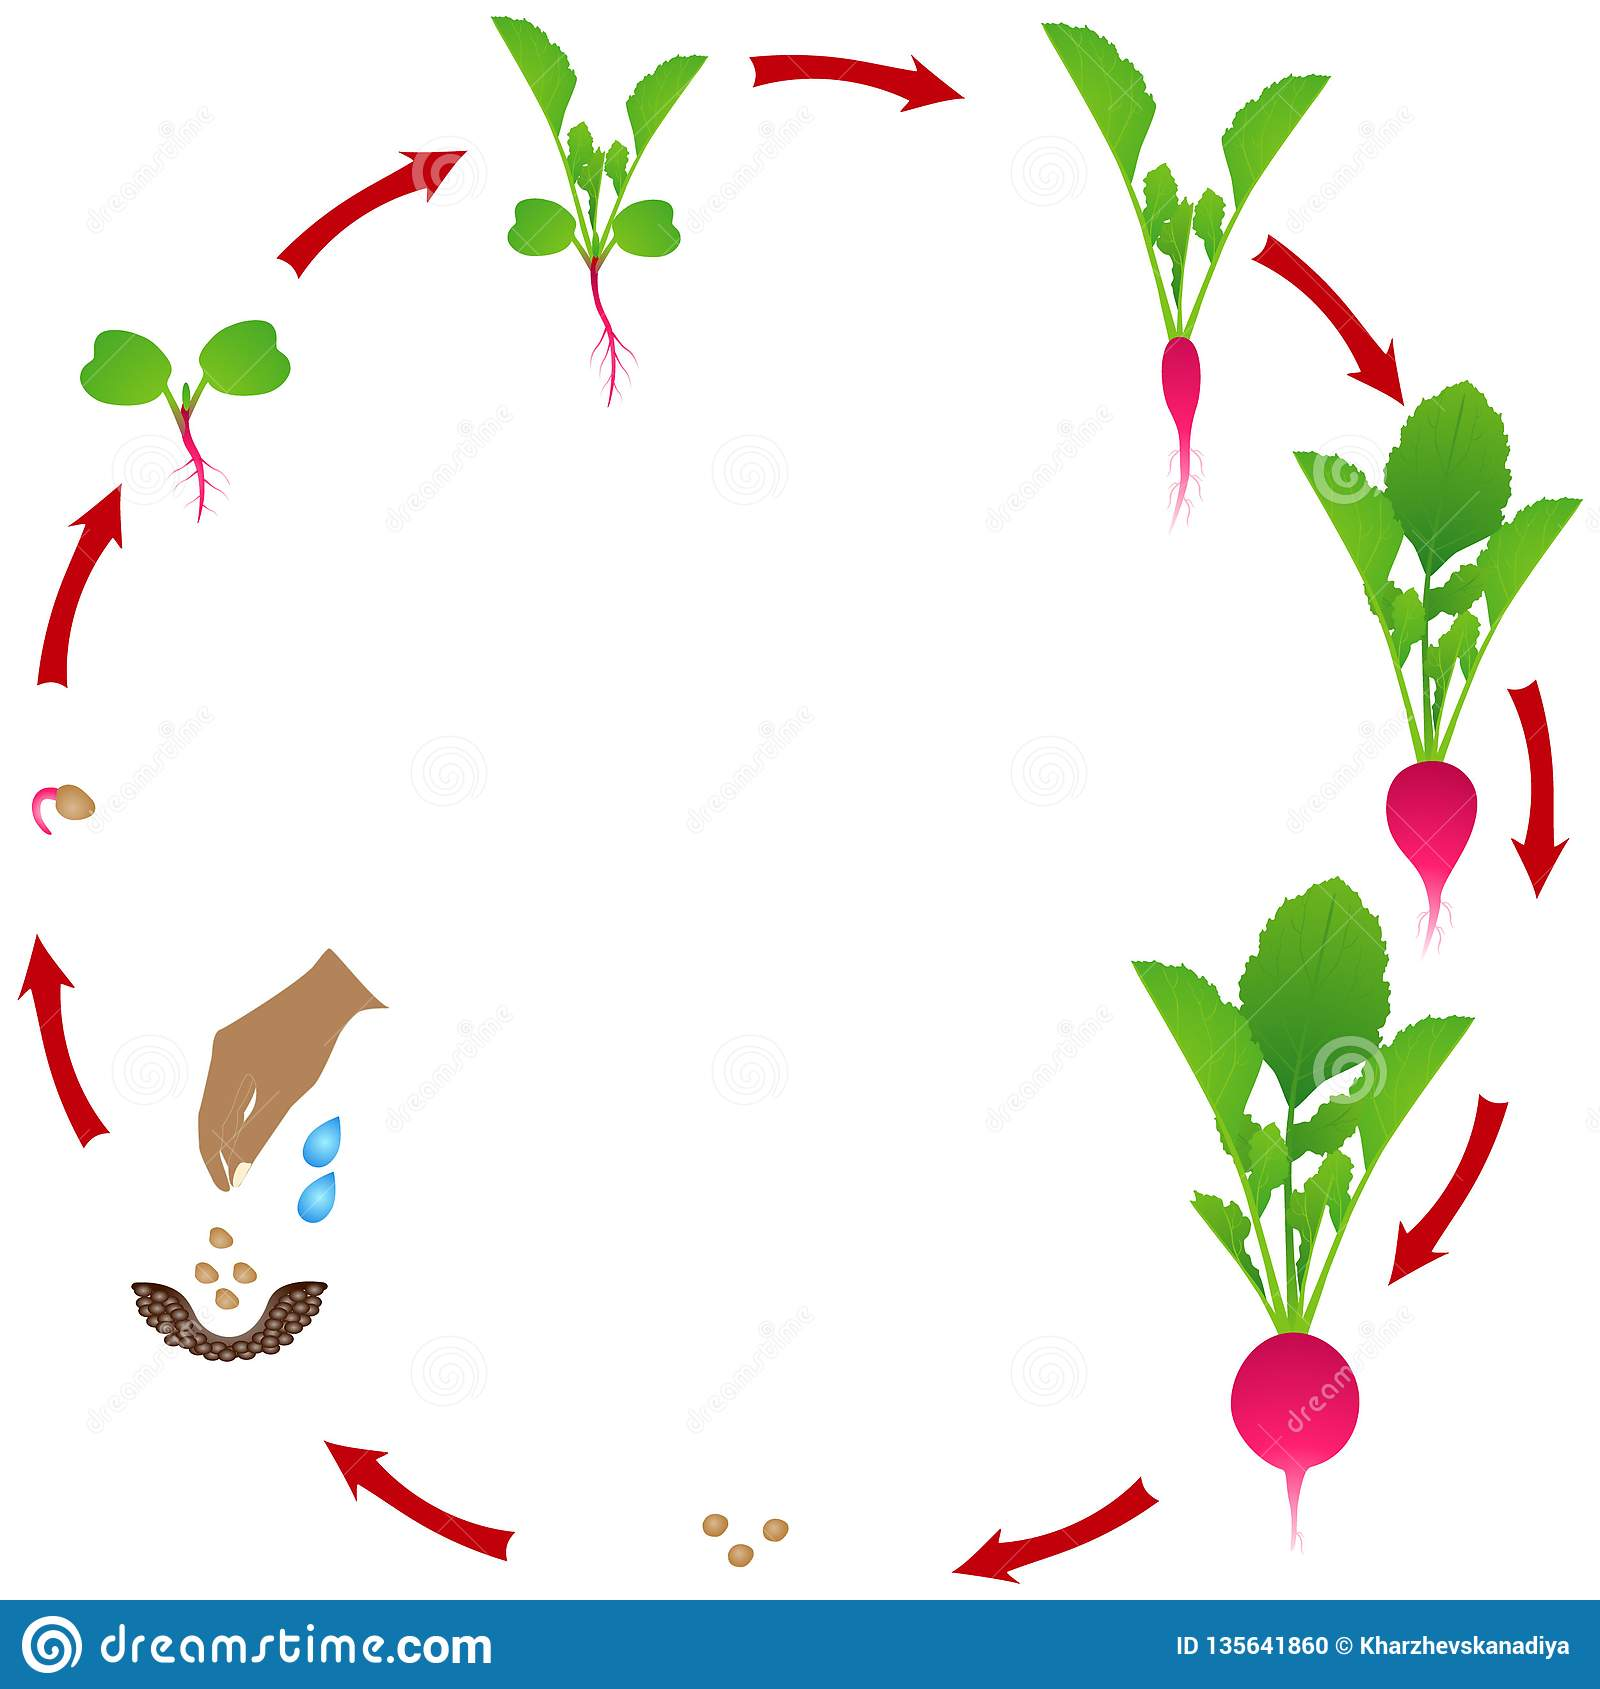 Life Cycle Of Radish Plant On A White Background Stock